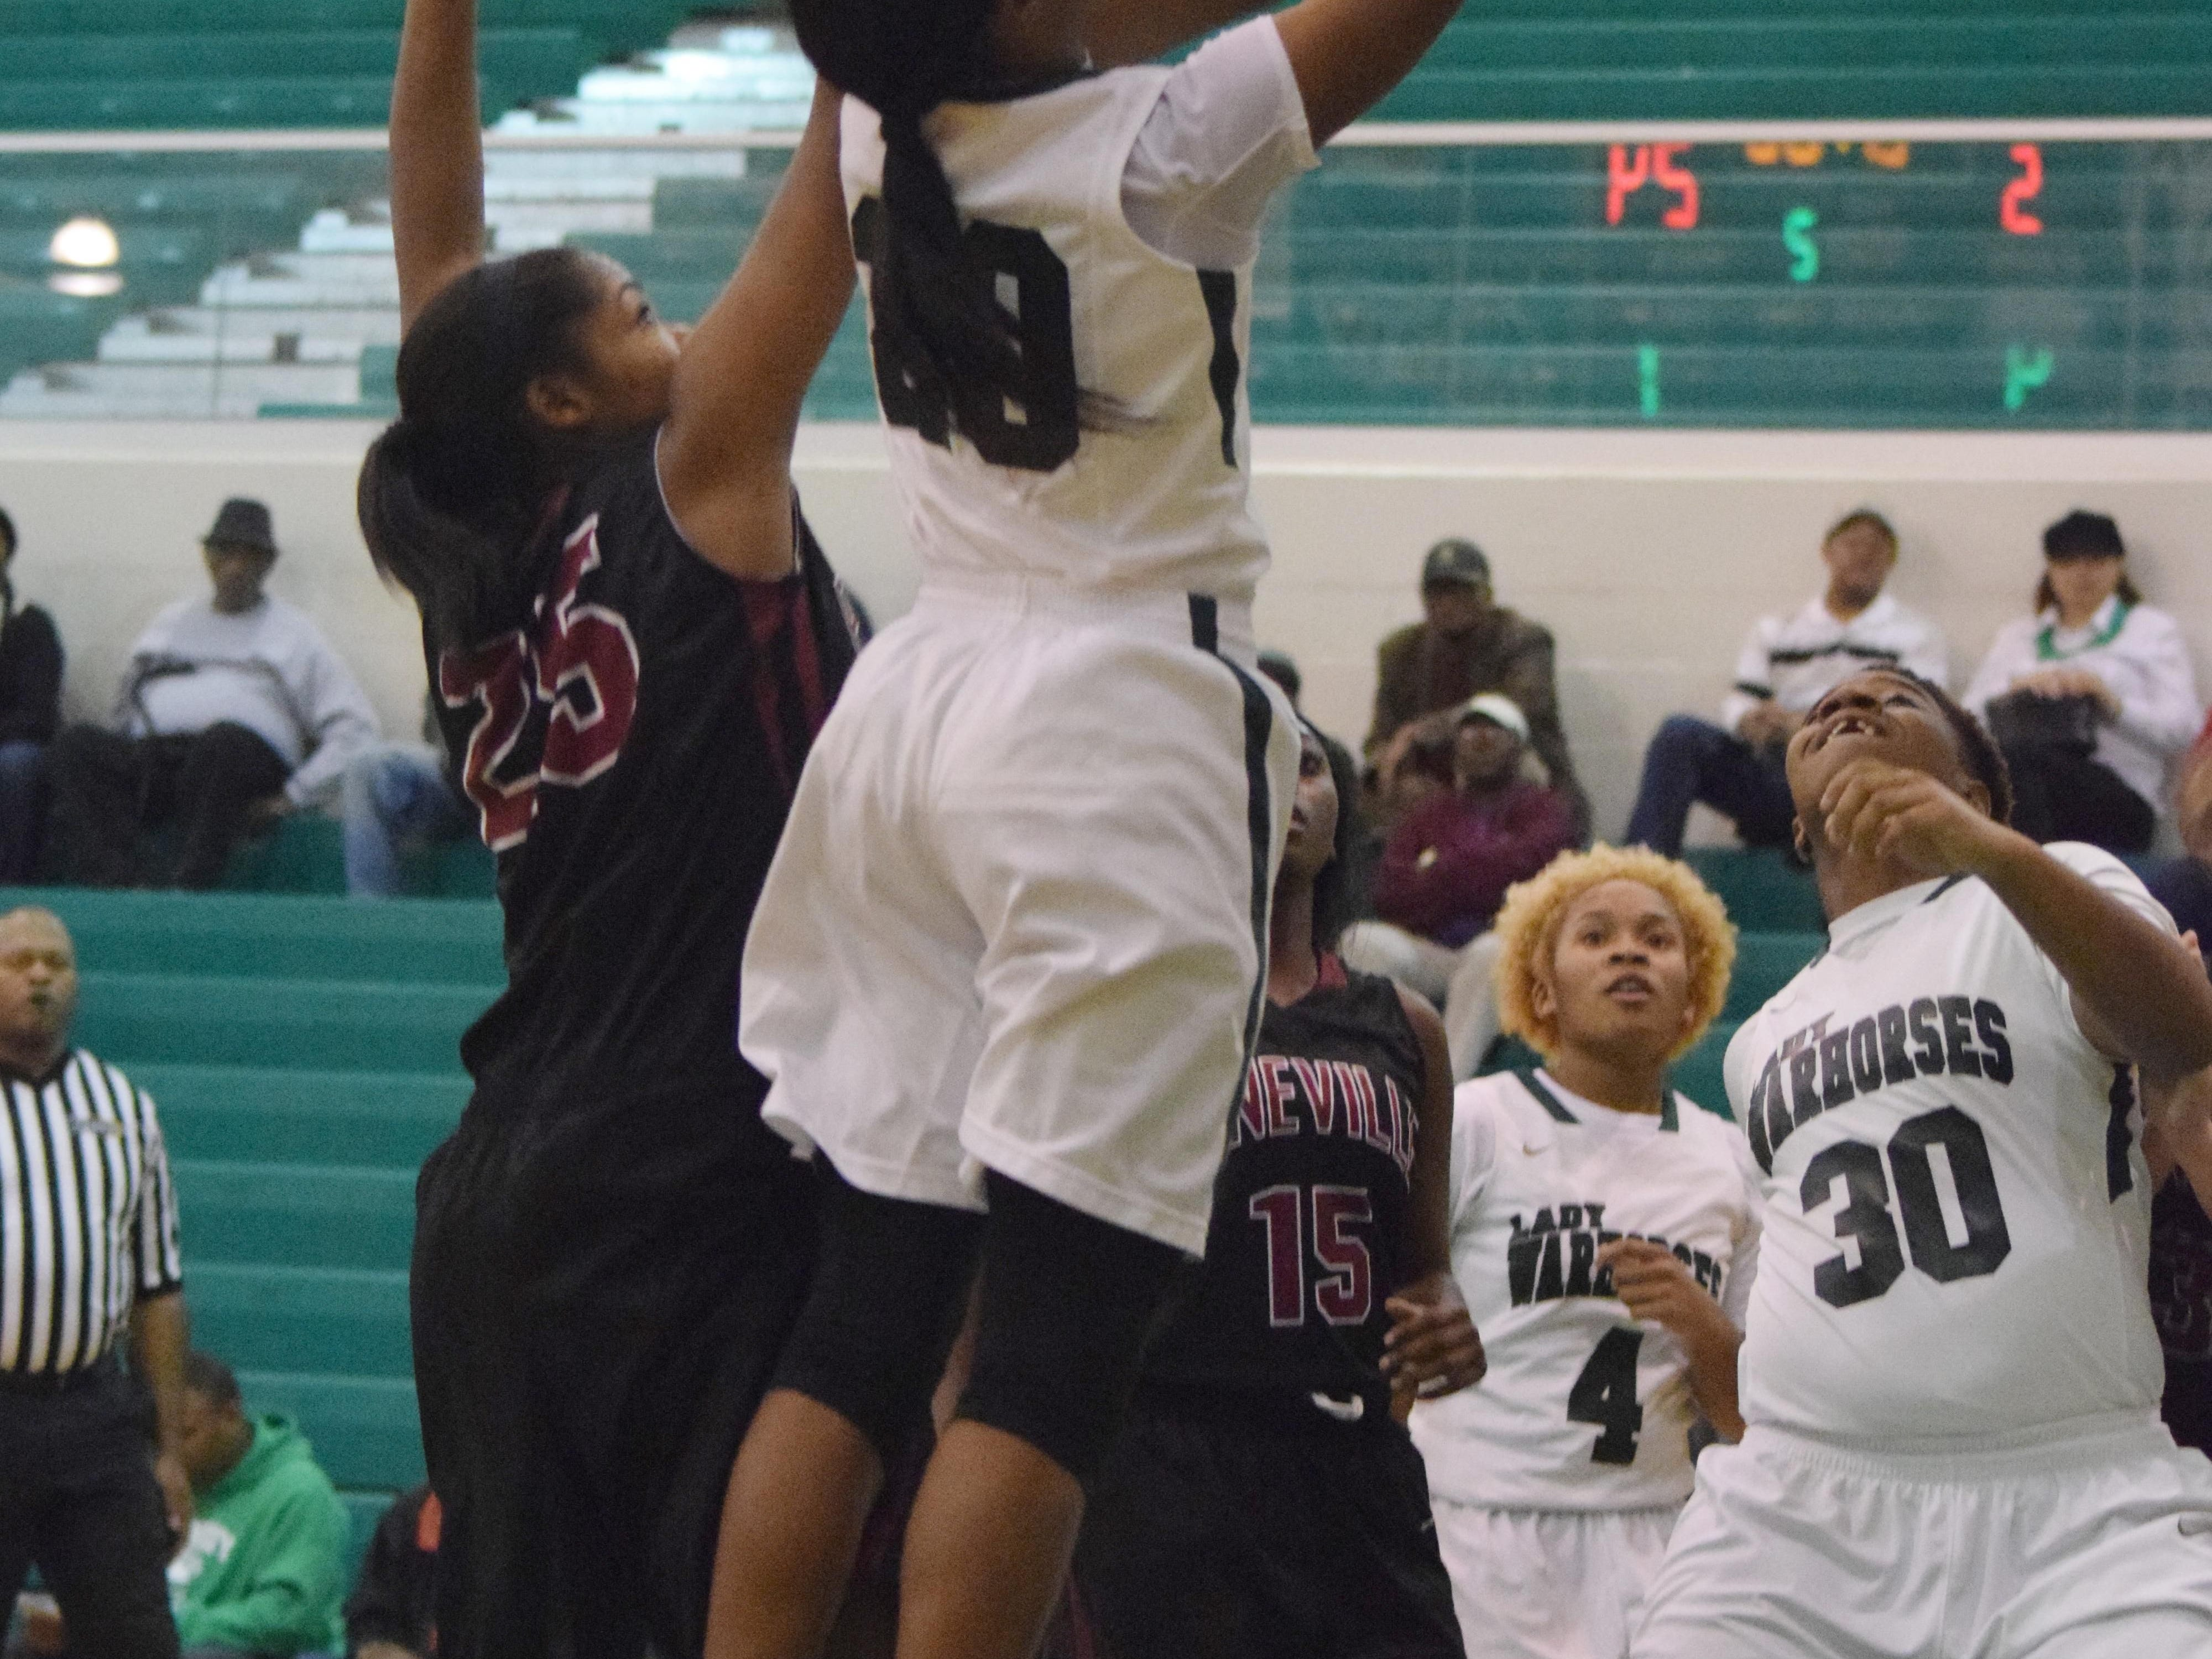 Peabody's Azia Reed (20, right) goes for two as Pineville's Krystal Freeman (25, left) blocks Tuesday.